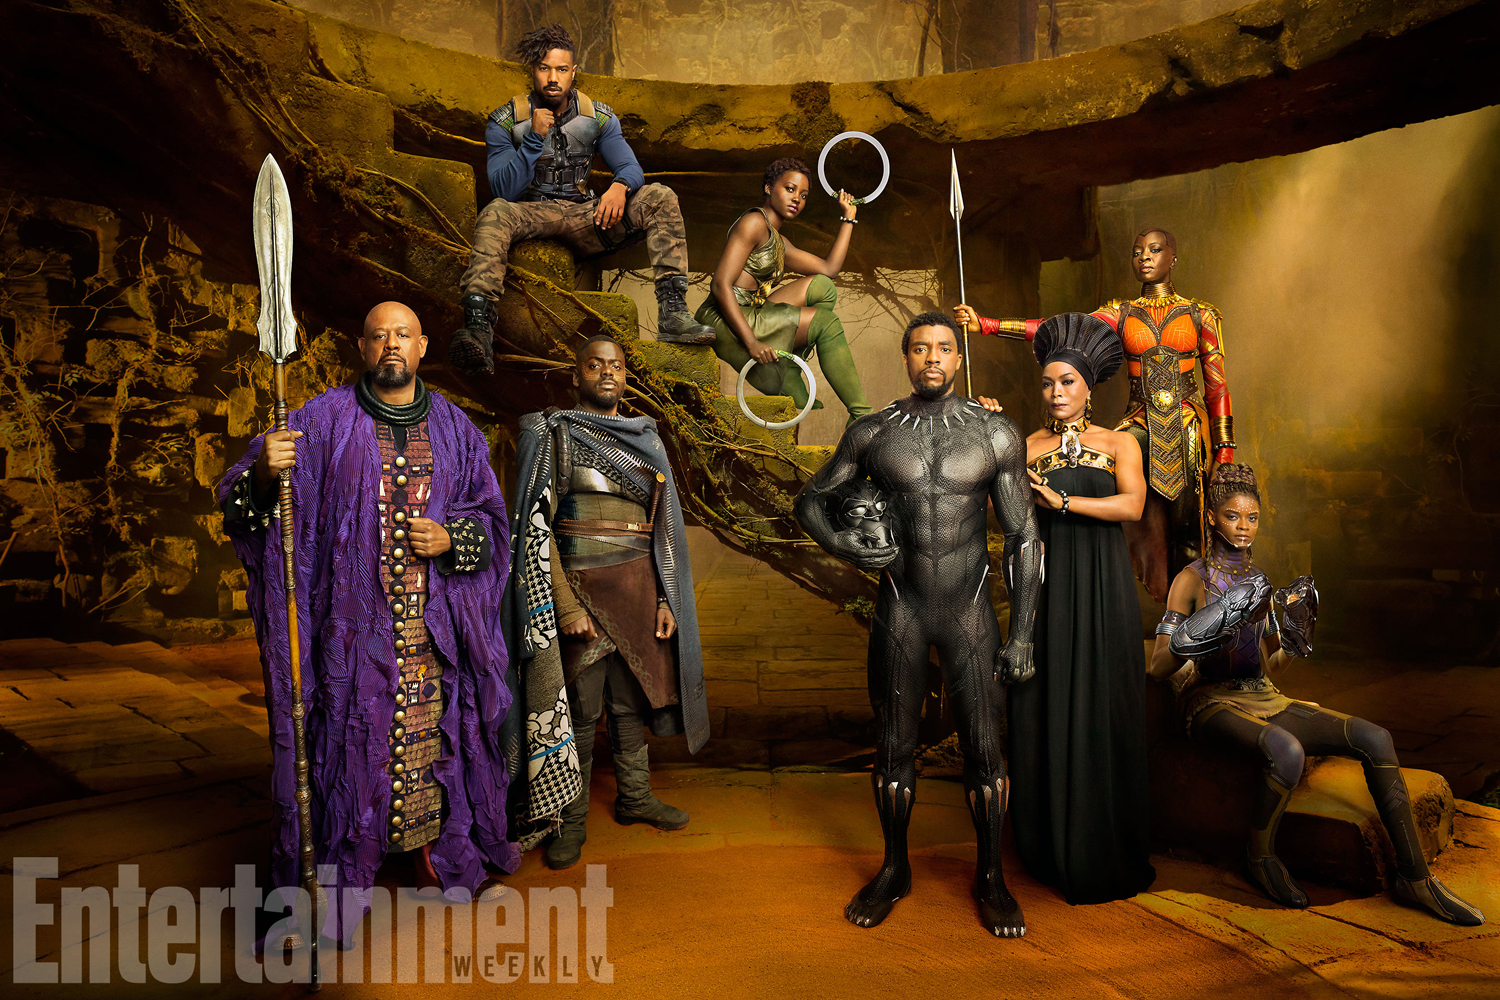 Group-shot of Black Panther's main characters